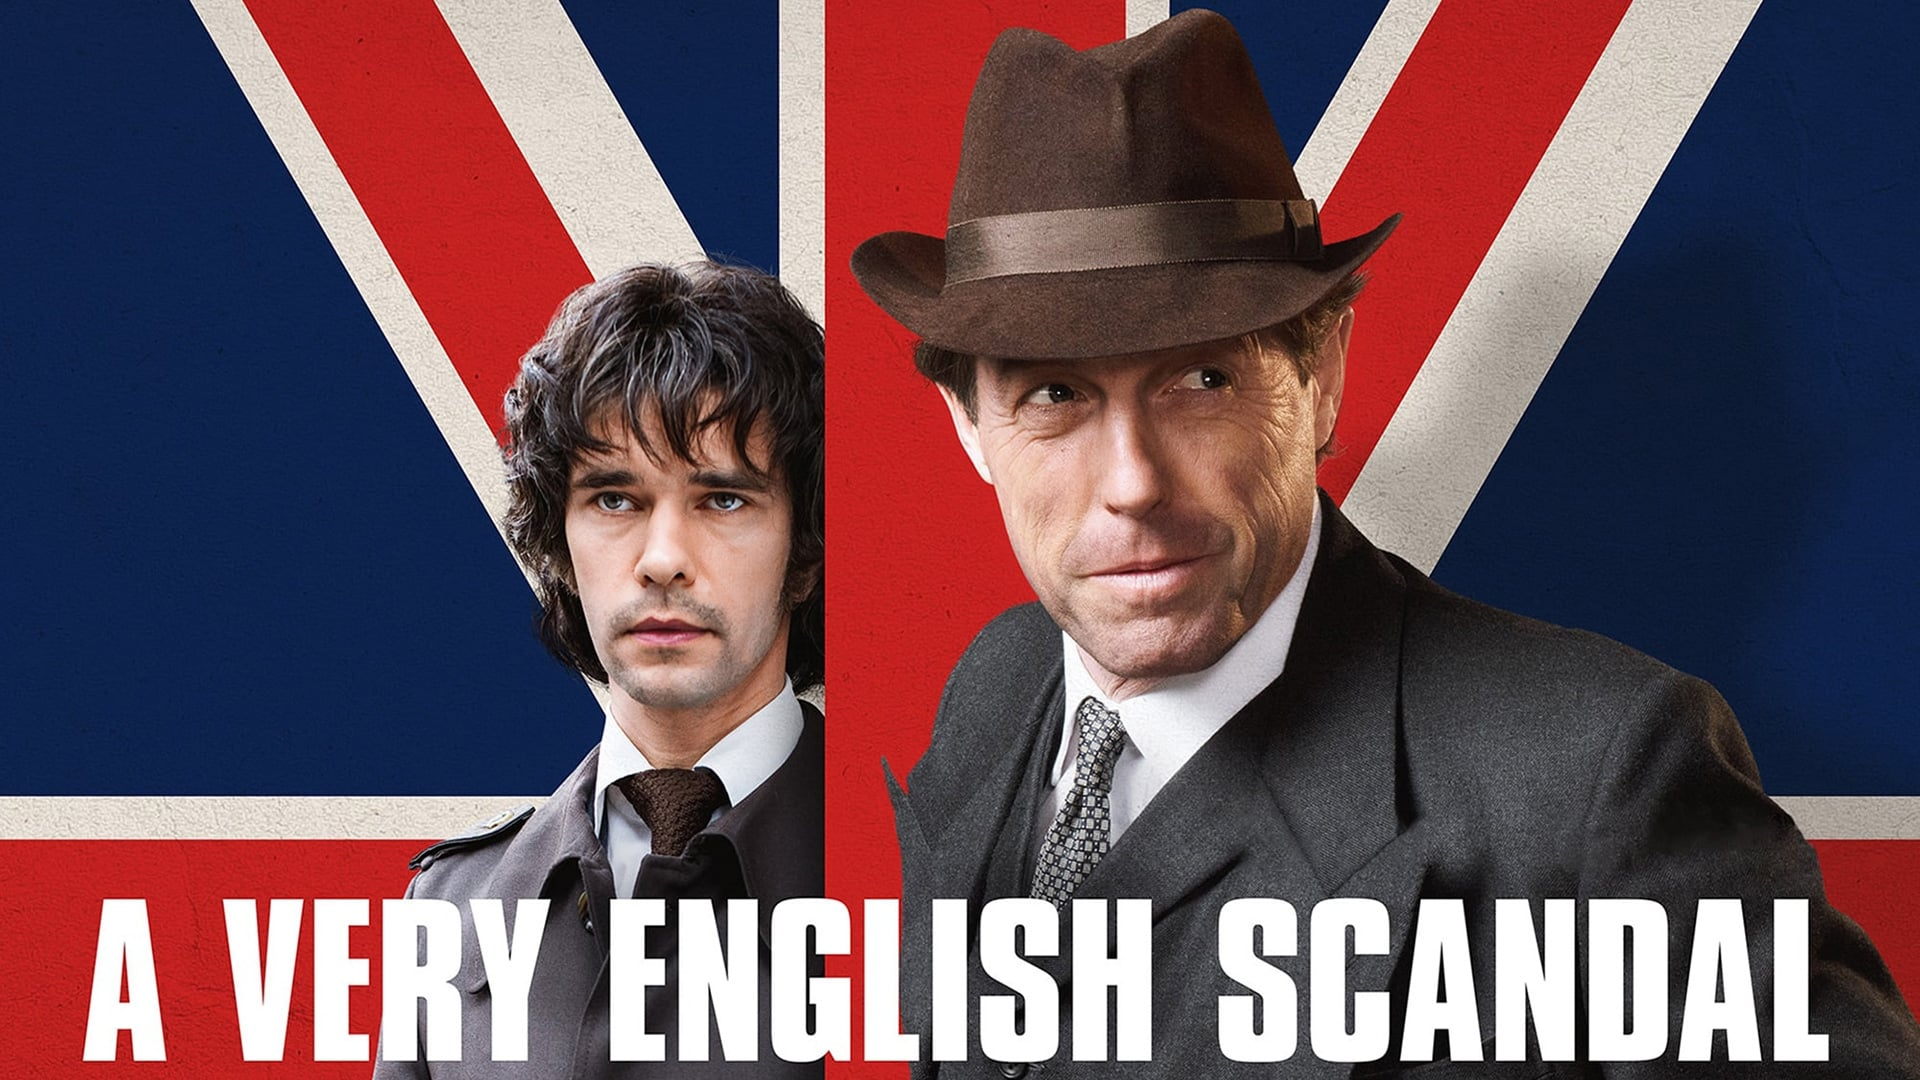 The second season of A Very English Scandal has two lead actors